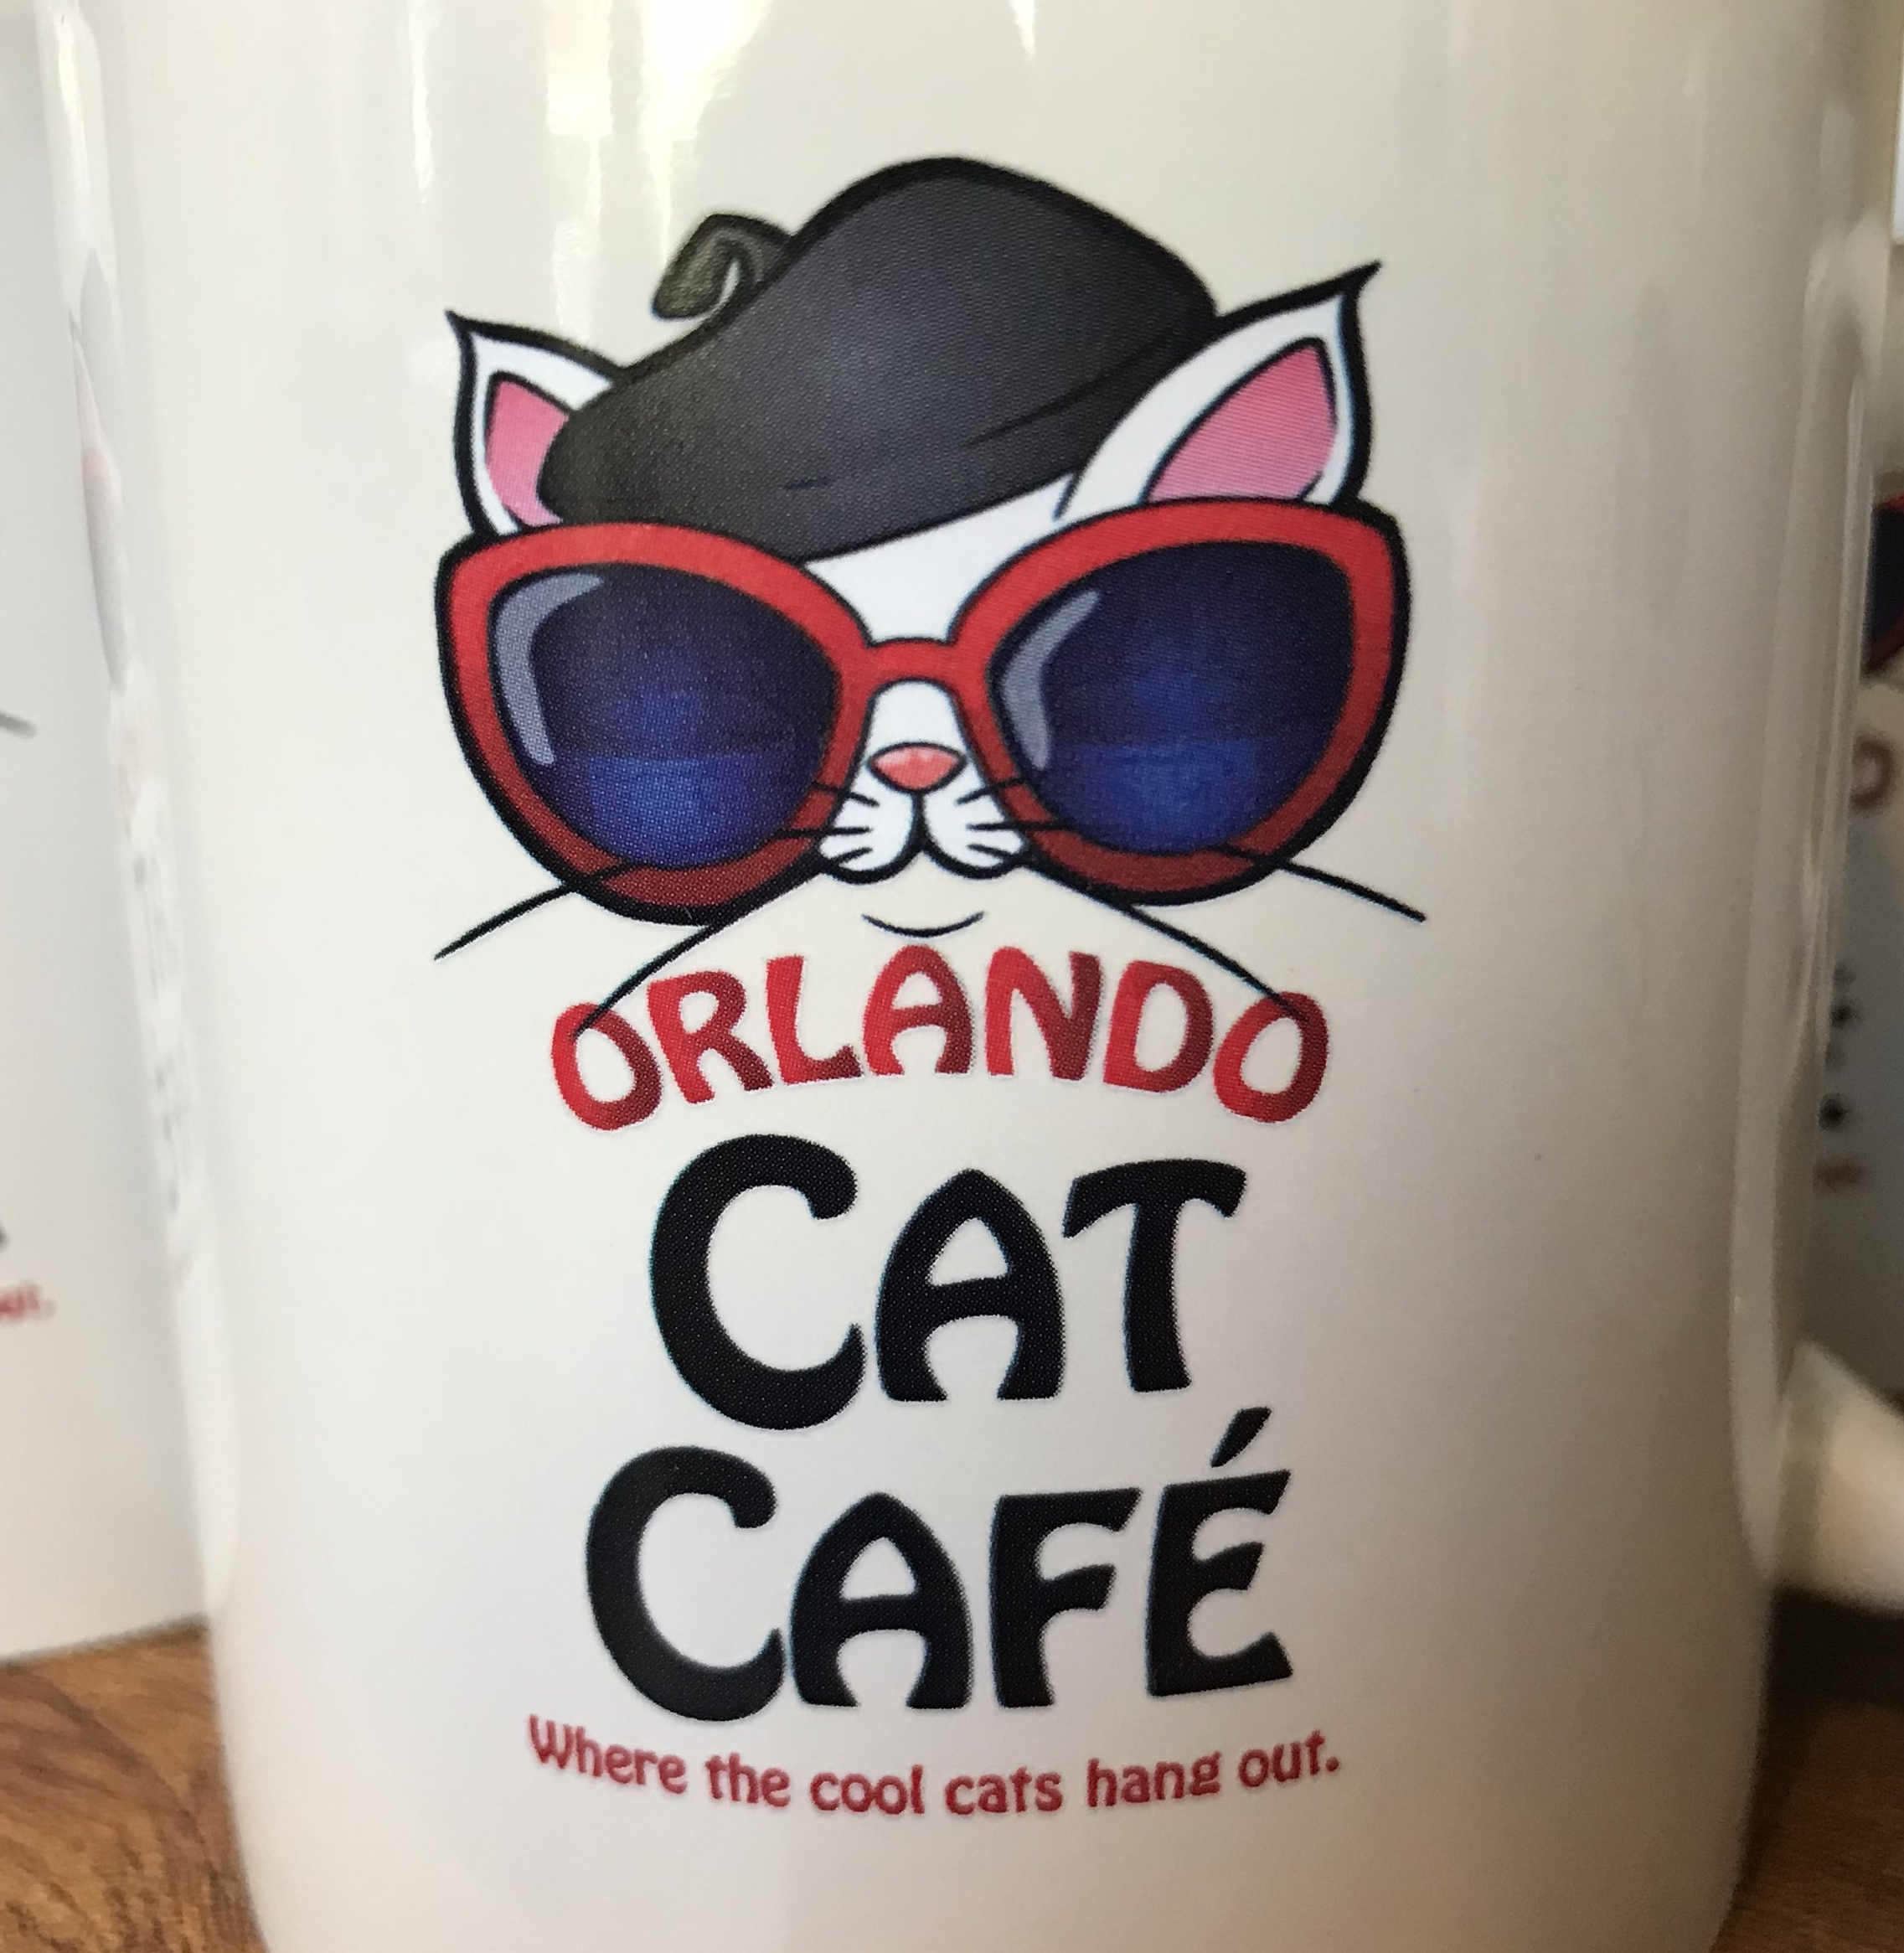 Orlando Cat Cafe   Orlando, FL, USA